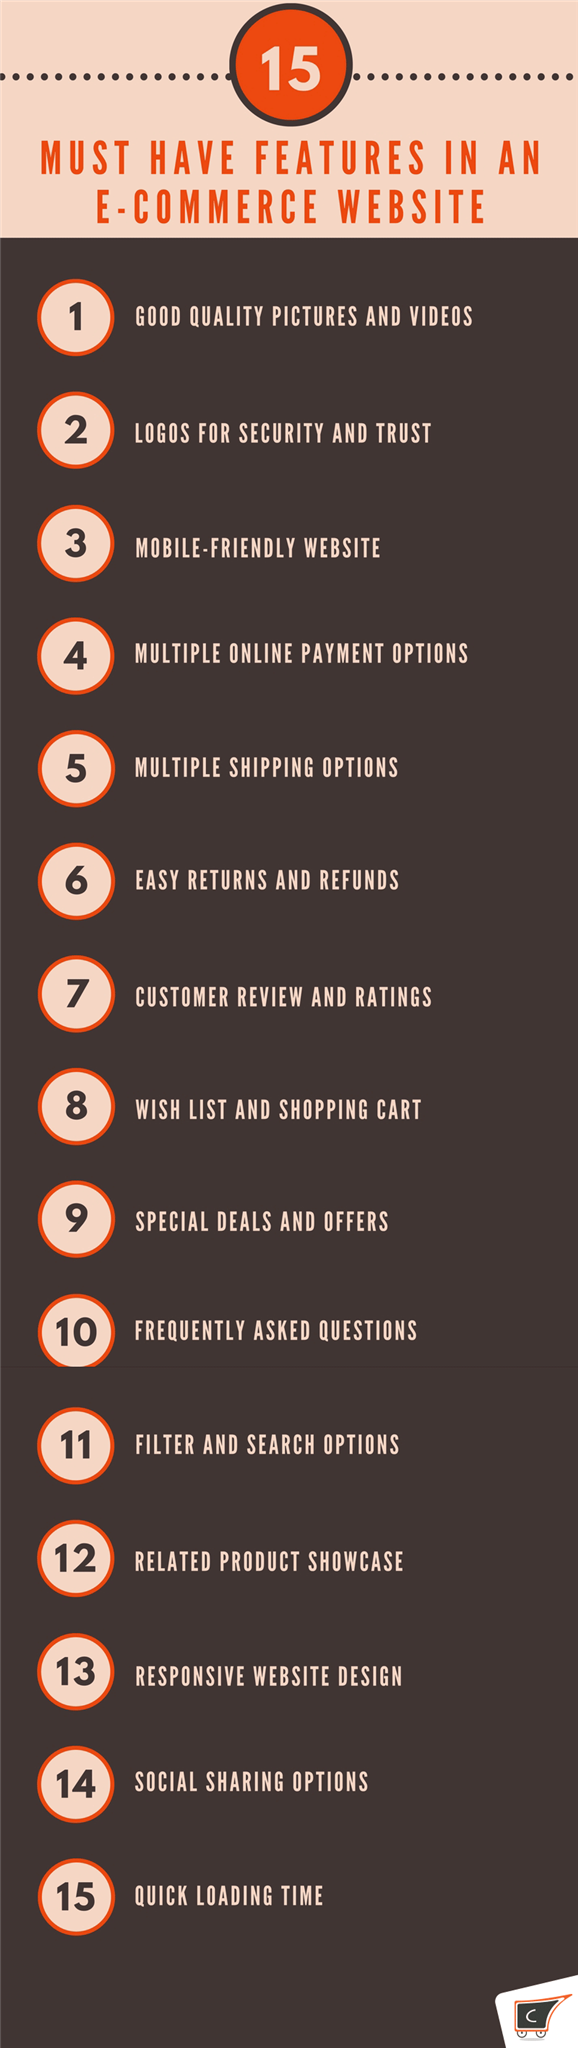 must have features of an ecommerce marketplace website